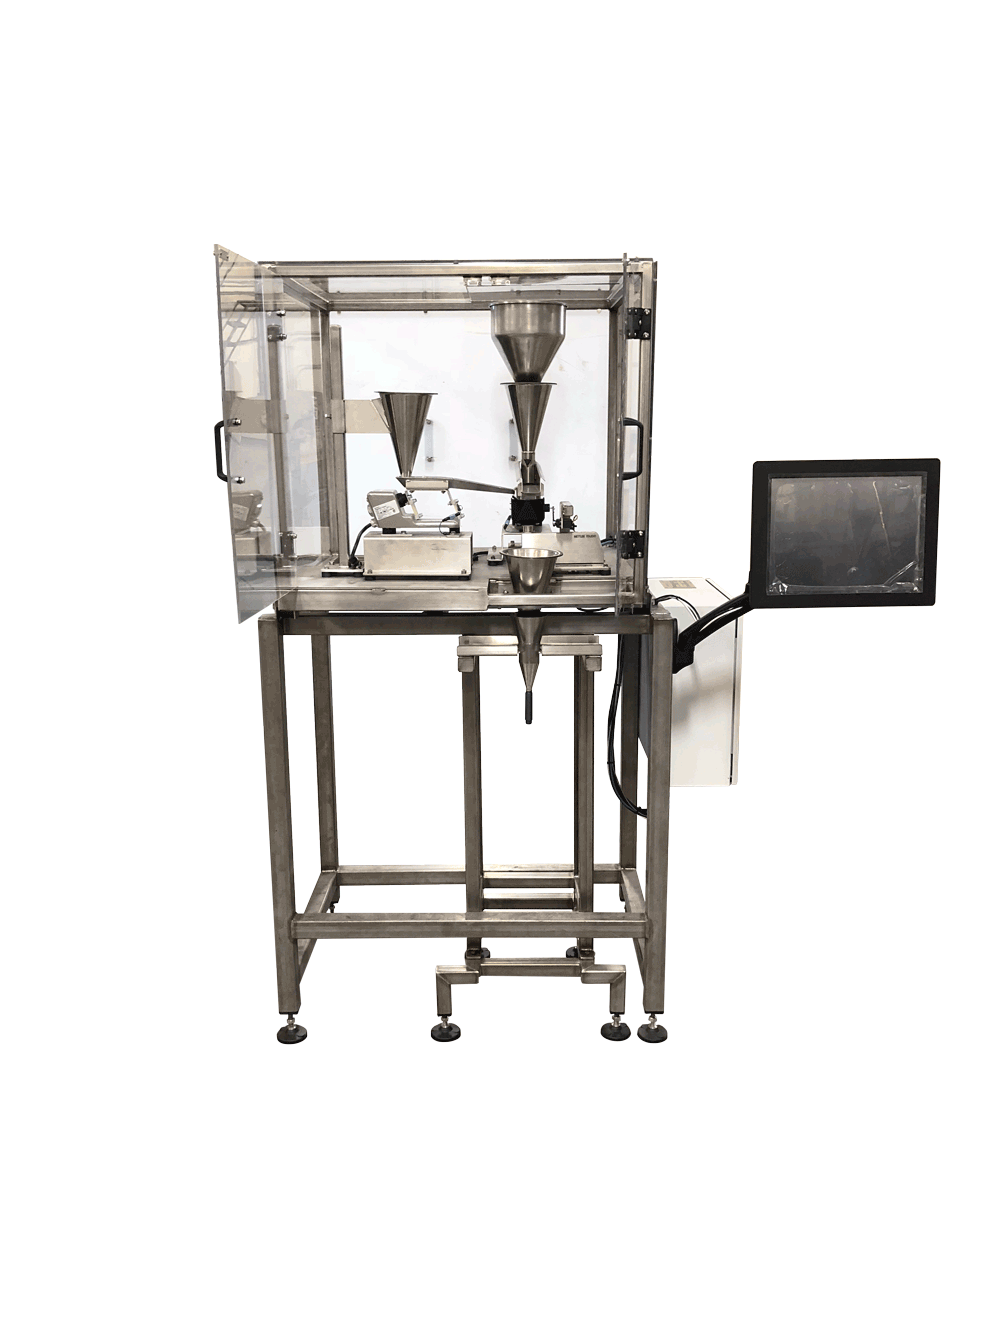 analytical scale,free weigh,scales weights,scale weigh,supersaturation,analytical balance,measurement of density,density measurements,calibrated scales,check weighers,dosing unit,diamond scales,volumetric powder dispensing,batching systems,ultra precision scale, ultra precision,dosing system,calibration of scales,dispensing powder,scale accuracy,industrial scale,calibration scale,precise balance,paint scale,micro pipette,dispensing powder,weigher scale,weights scale,weight testing,industrial weight scale,process analytics,analytical scale,jewellery scale,checkweighing,mettler toledo international inc,mettler scale,mettler balance,weights scale,balances,precision scales,weighing balance,weighing,jewel scale,microbalance,combination systems,count scale,weight controllers,microbalance,precise scale,balance weigh,scales for weighing,weight sensor,calibration balance,weighing scale heavy duty,analytical balance accuracy,microgram scales,balances lab,weight calibration,weighing scale gold,analytical balance precision,lab weighing scale,digital scale,gram scale,milligram scale,gram scale,weighing balance,digital weight scale,digital scale grams,laboratory balance,electronic balance, scientific scale,lab balance,analytical balance price,weight scale, ultra high precision scale, ultra precision scale,high precision scales, precision scales 0.001 g,precision weighing scales,high precision digital scales,precision lab scales,precision scales 0.0001 g, small precision scales, pharmaceutical scales, pharmaceutical high precision scales, precision scales canada, precision scales uk, precision scales mexico, precision scales germany,precision balance scales, gram precision scales, industrial scales calibration, medical equipment scale, medical calibration scales, medical calibration high precision scale,washdown scale, precision and scale,made in usa scales, southern california precision scales companies, southern california high precision scales, southern california precision sca